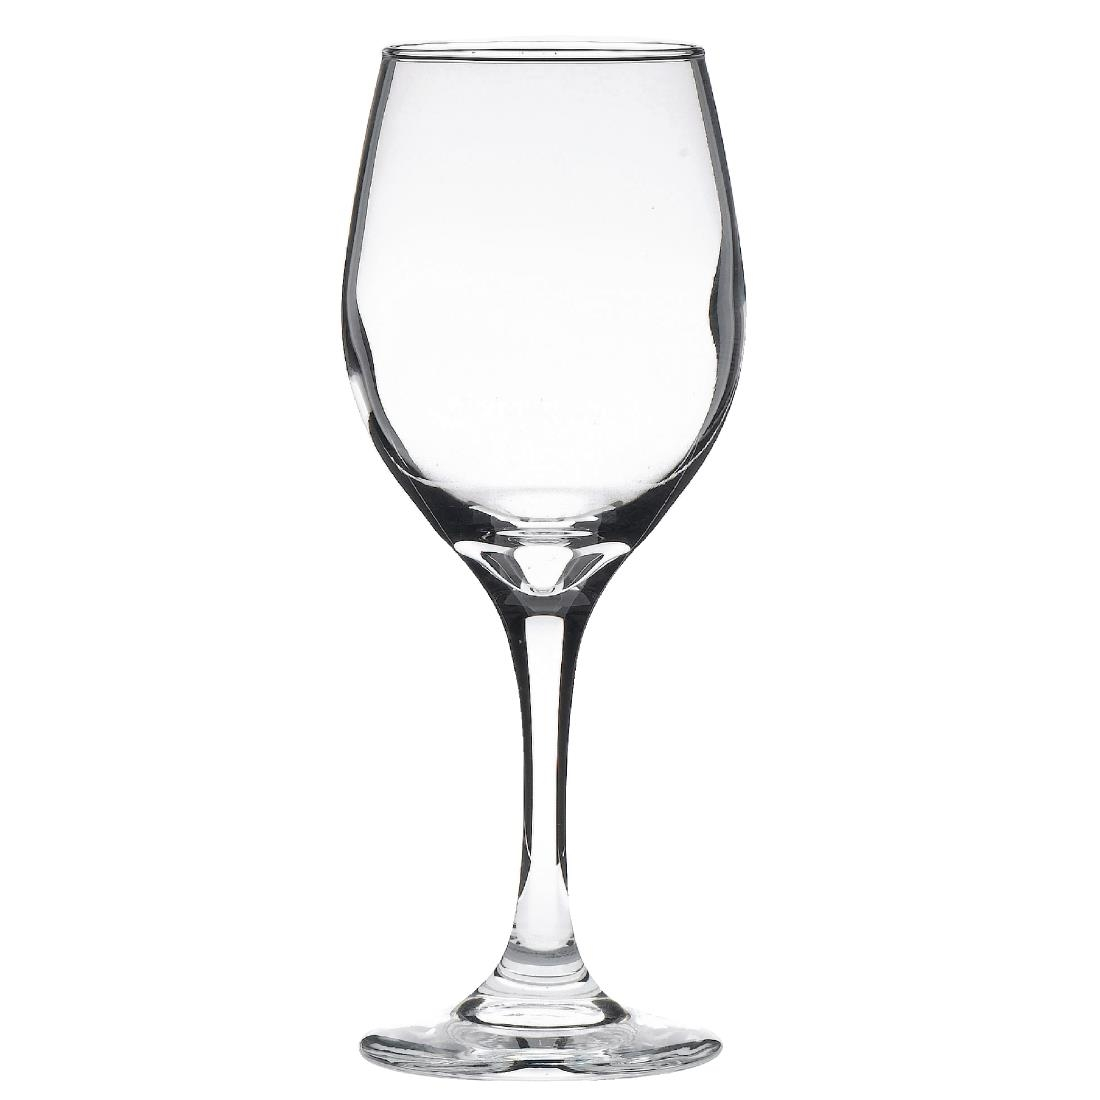 Libbey Perception Wine Glasses 320ml CE Marked at 250ml Pack of 12